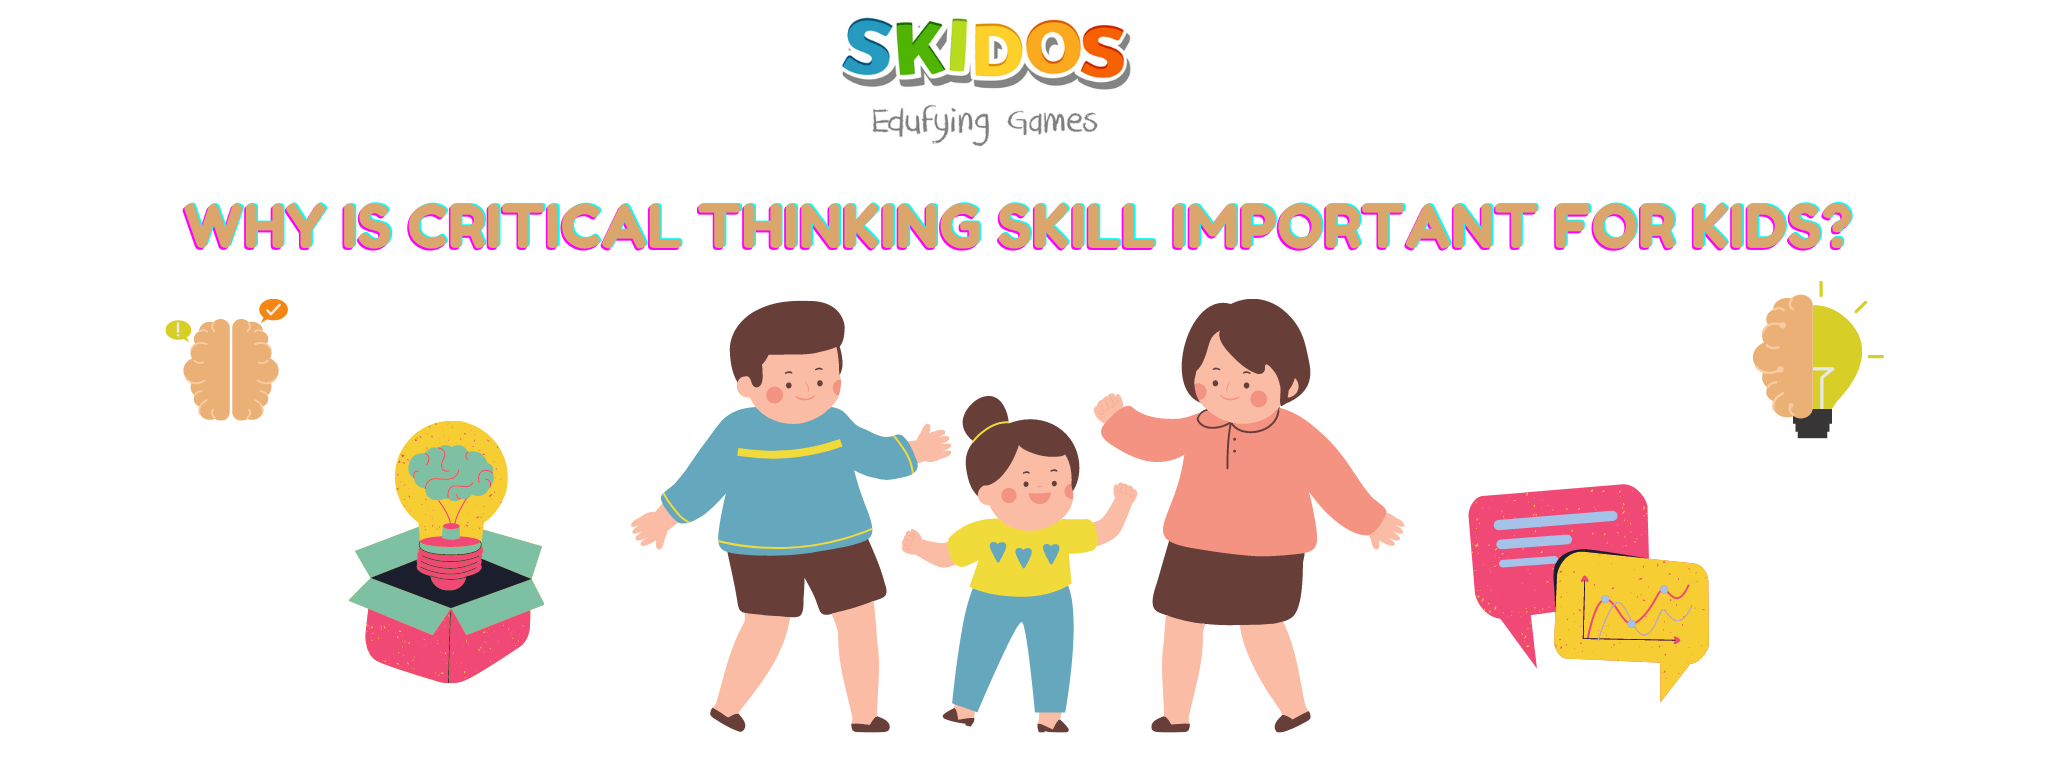 Why is critical thinking skill important for kids